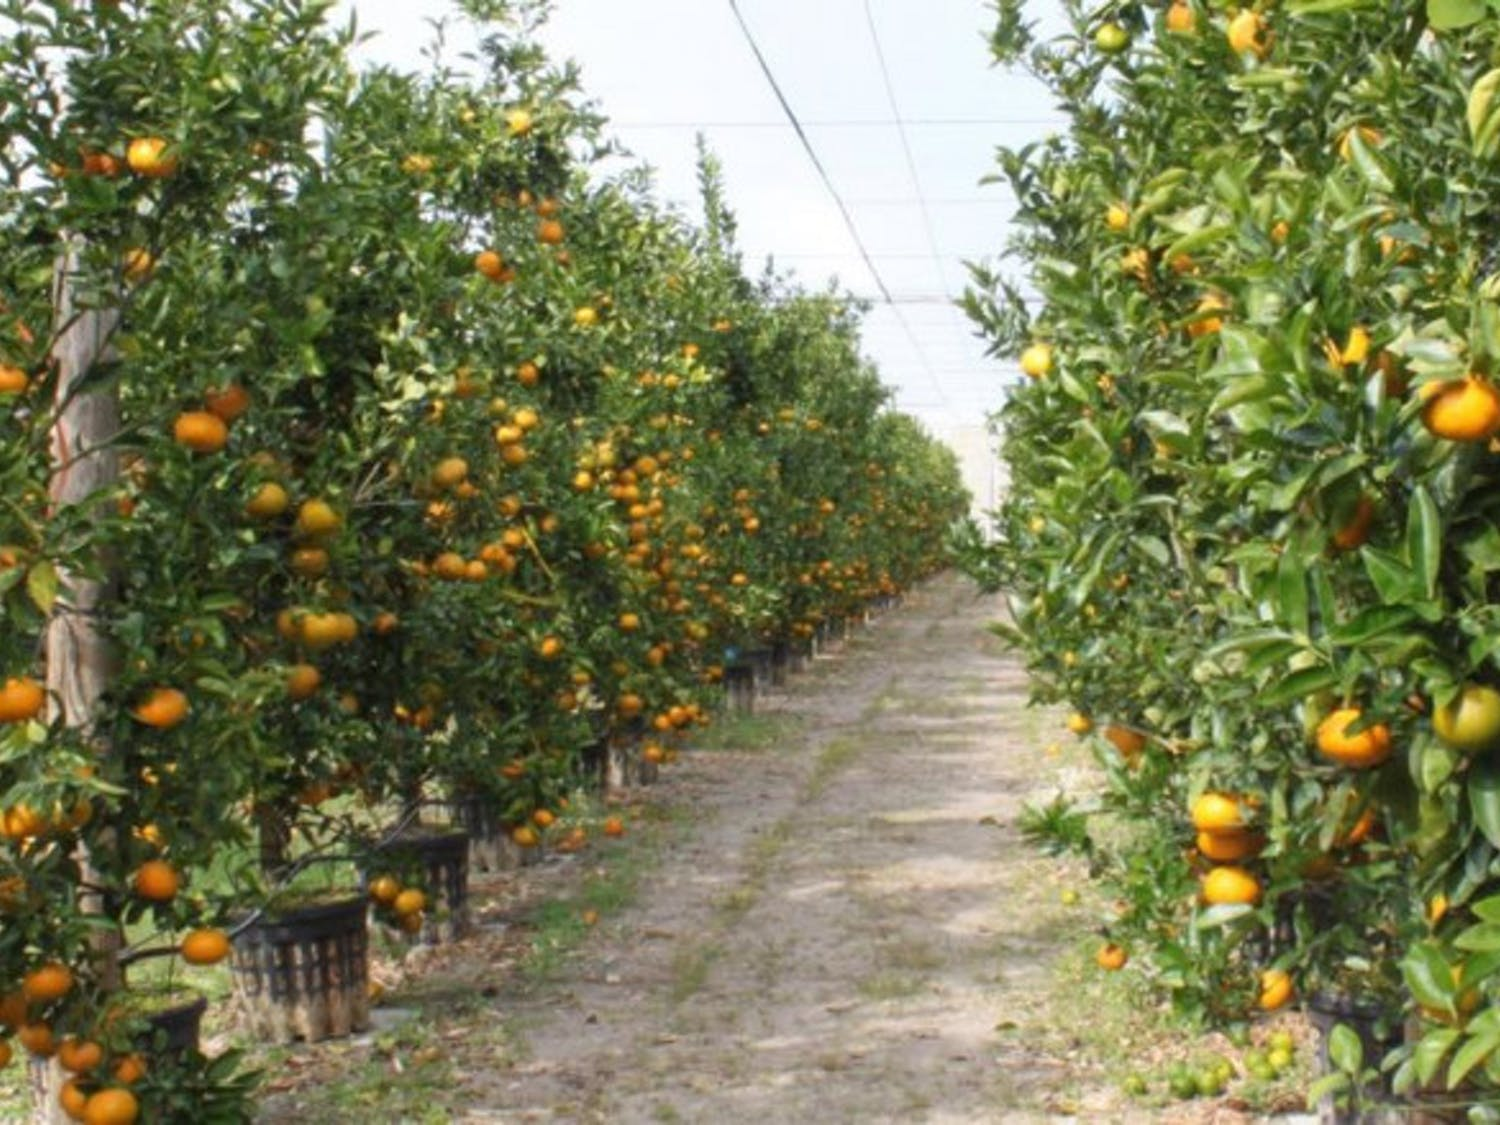 Citrus greening is a disease that reduces the production of citrus, with symptoms including yellowing of the leaves, dying of the trees or branches, abnormally tasting fruit and no fruiting. This 1-acre Citrus Under Protective Screen, a mesh screening, protects these 2.5-year-old mandarin trees by blocking out the Asian citrus psyllid, an insect that carries the bacteria that causes greening.